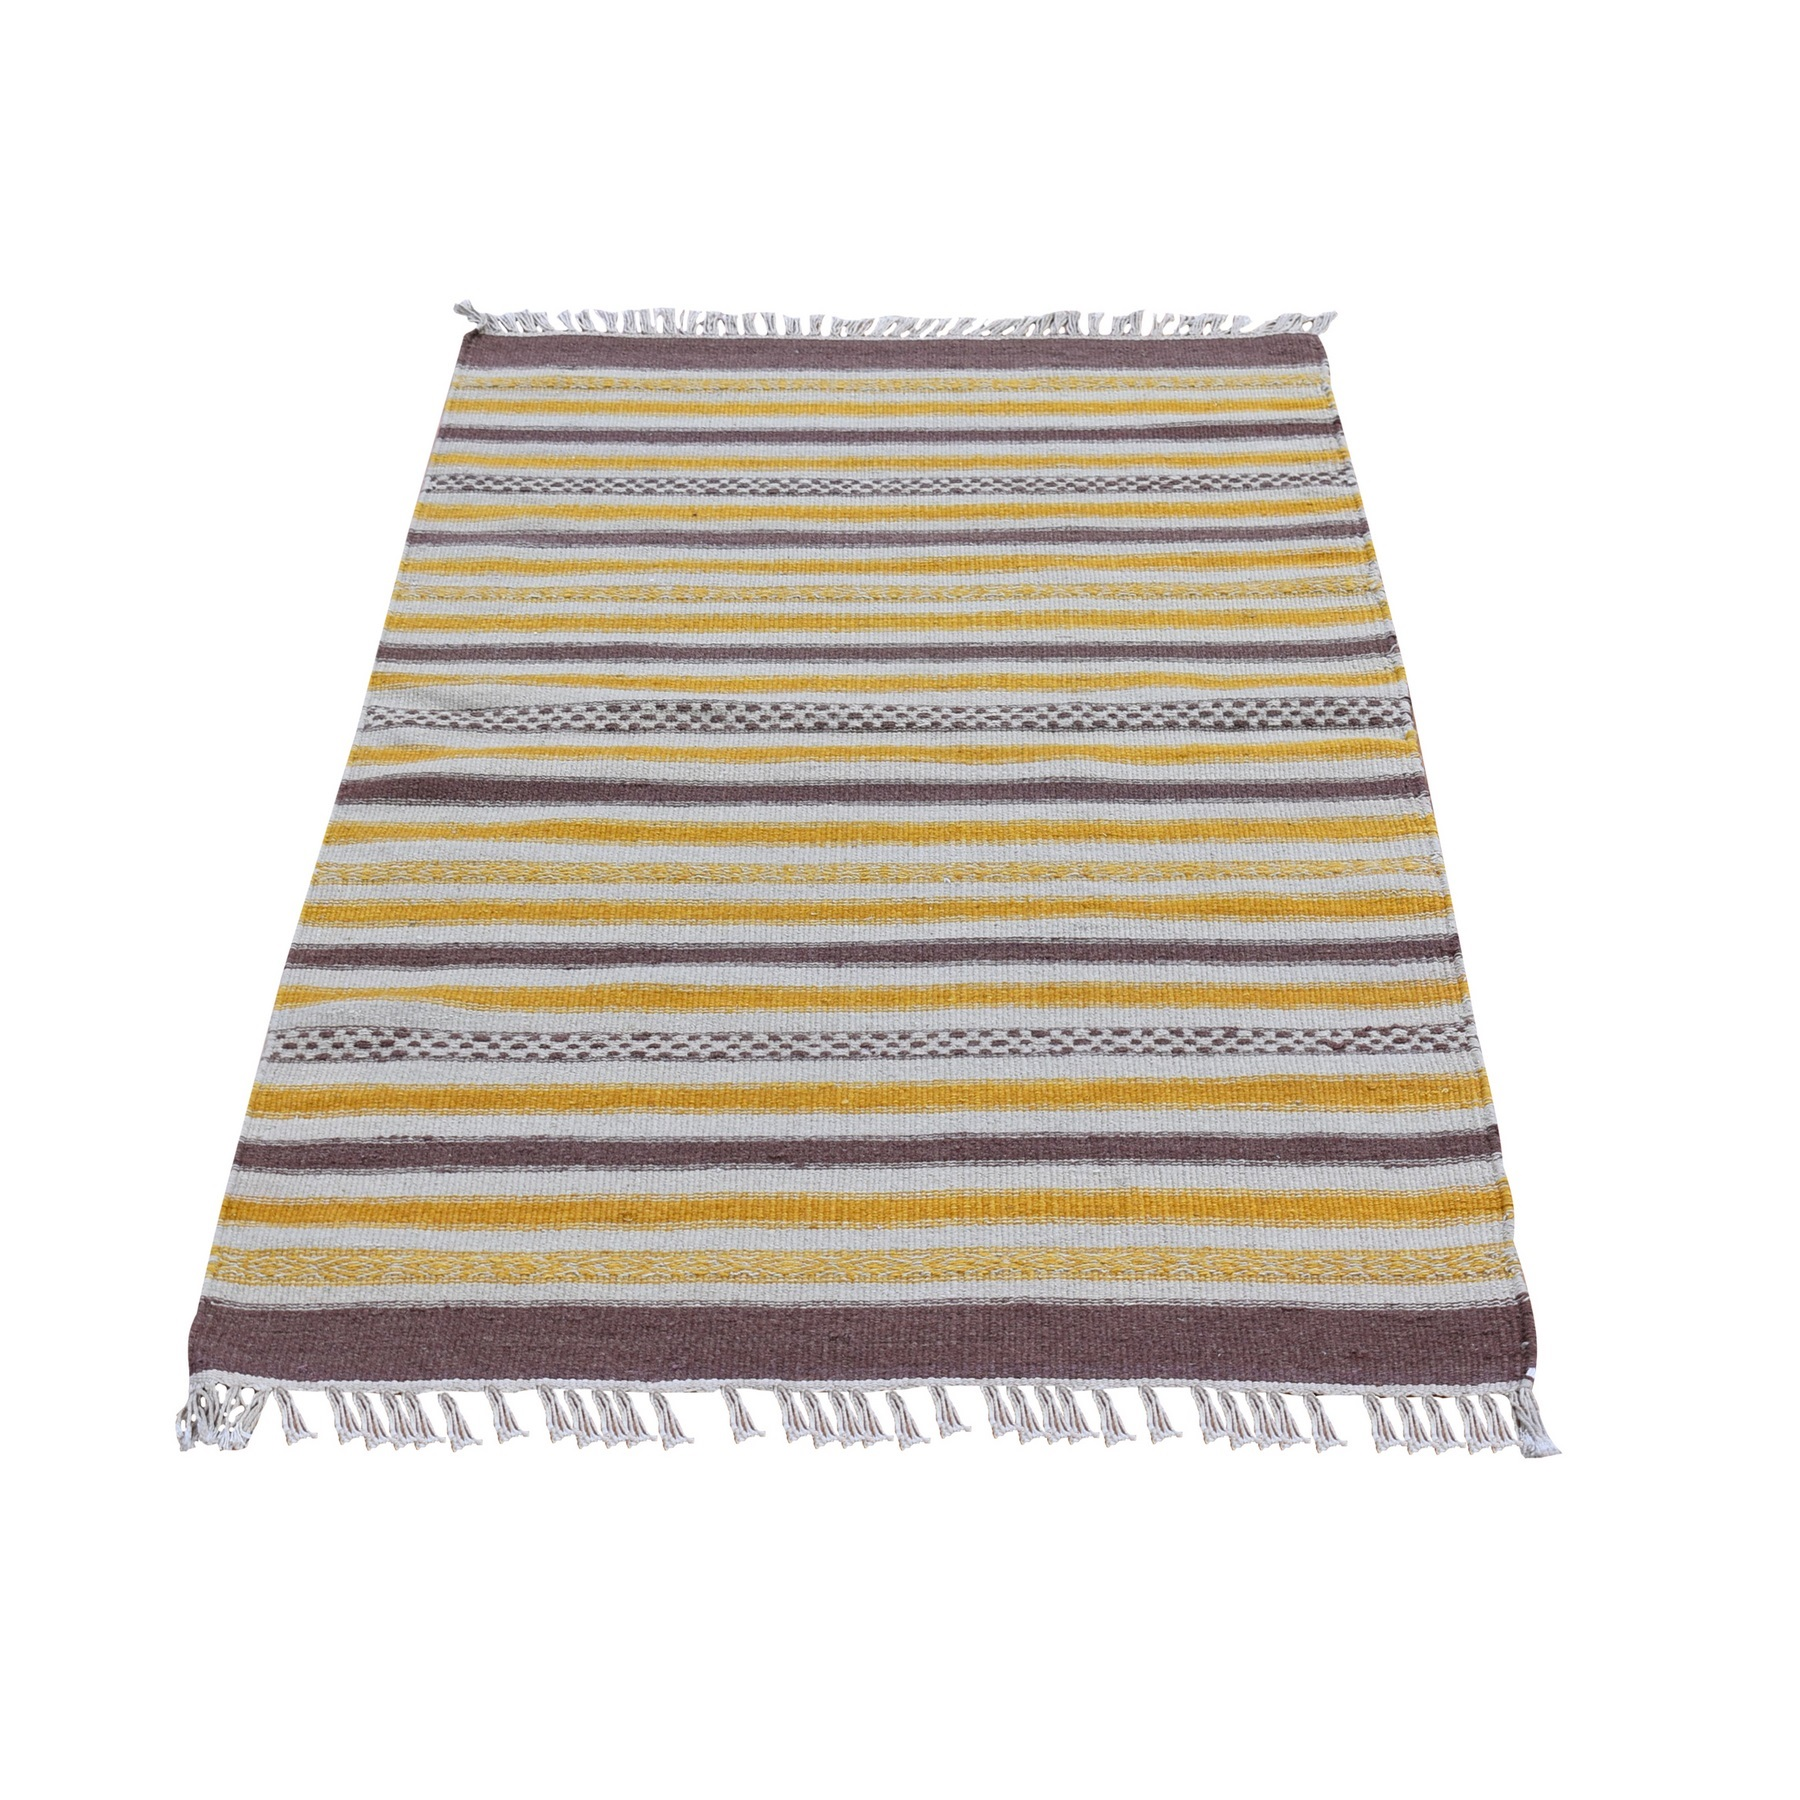 "2'9""x4'10"" Yellow Striped Design Flat Weave Kilim Pure Wool Hand Woven Oriental Rug"